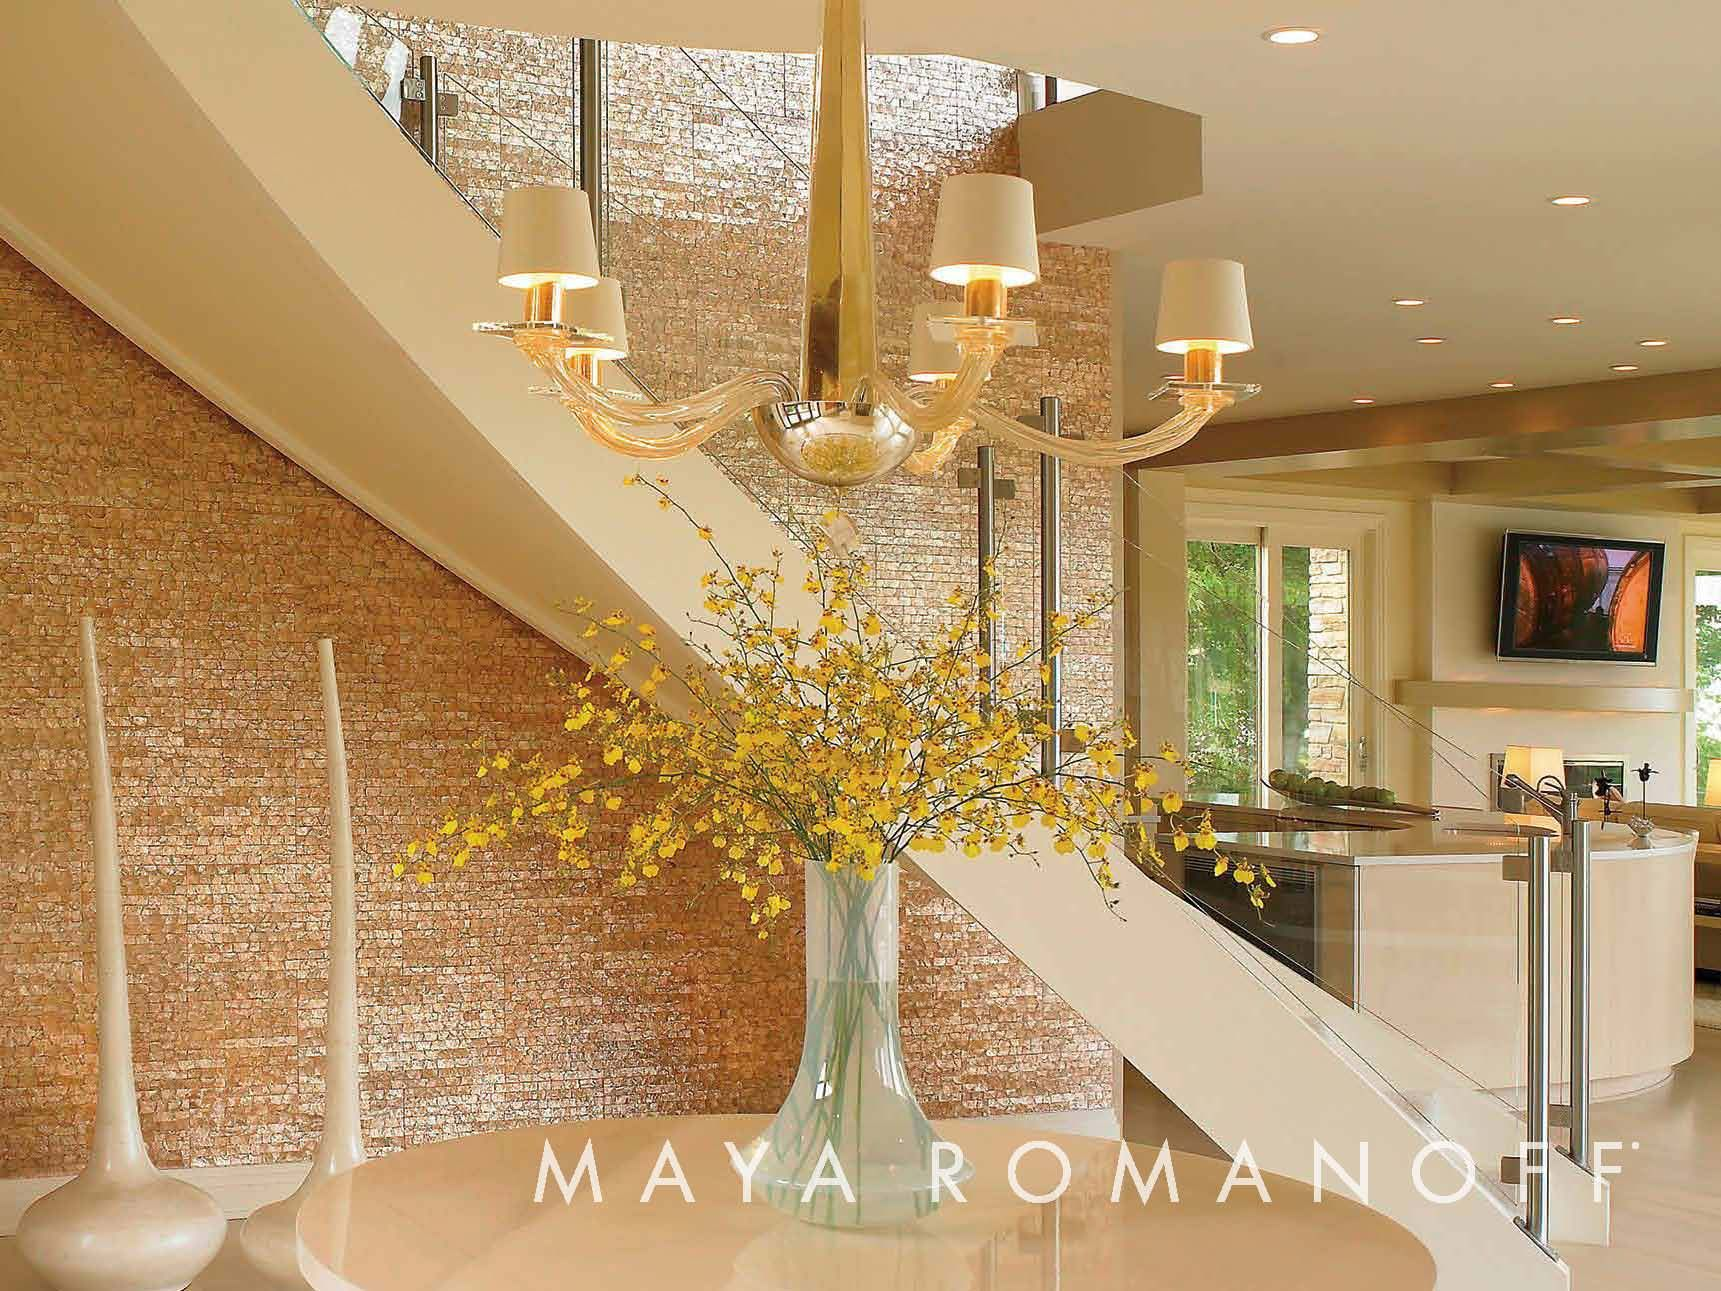 Maya Romanoff\'s Mother of Pearl Tiles glow brilliantly in this ...